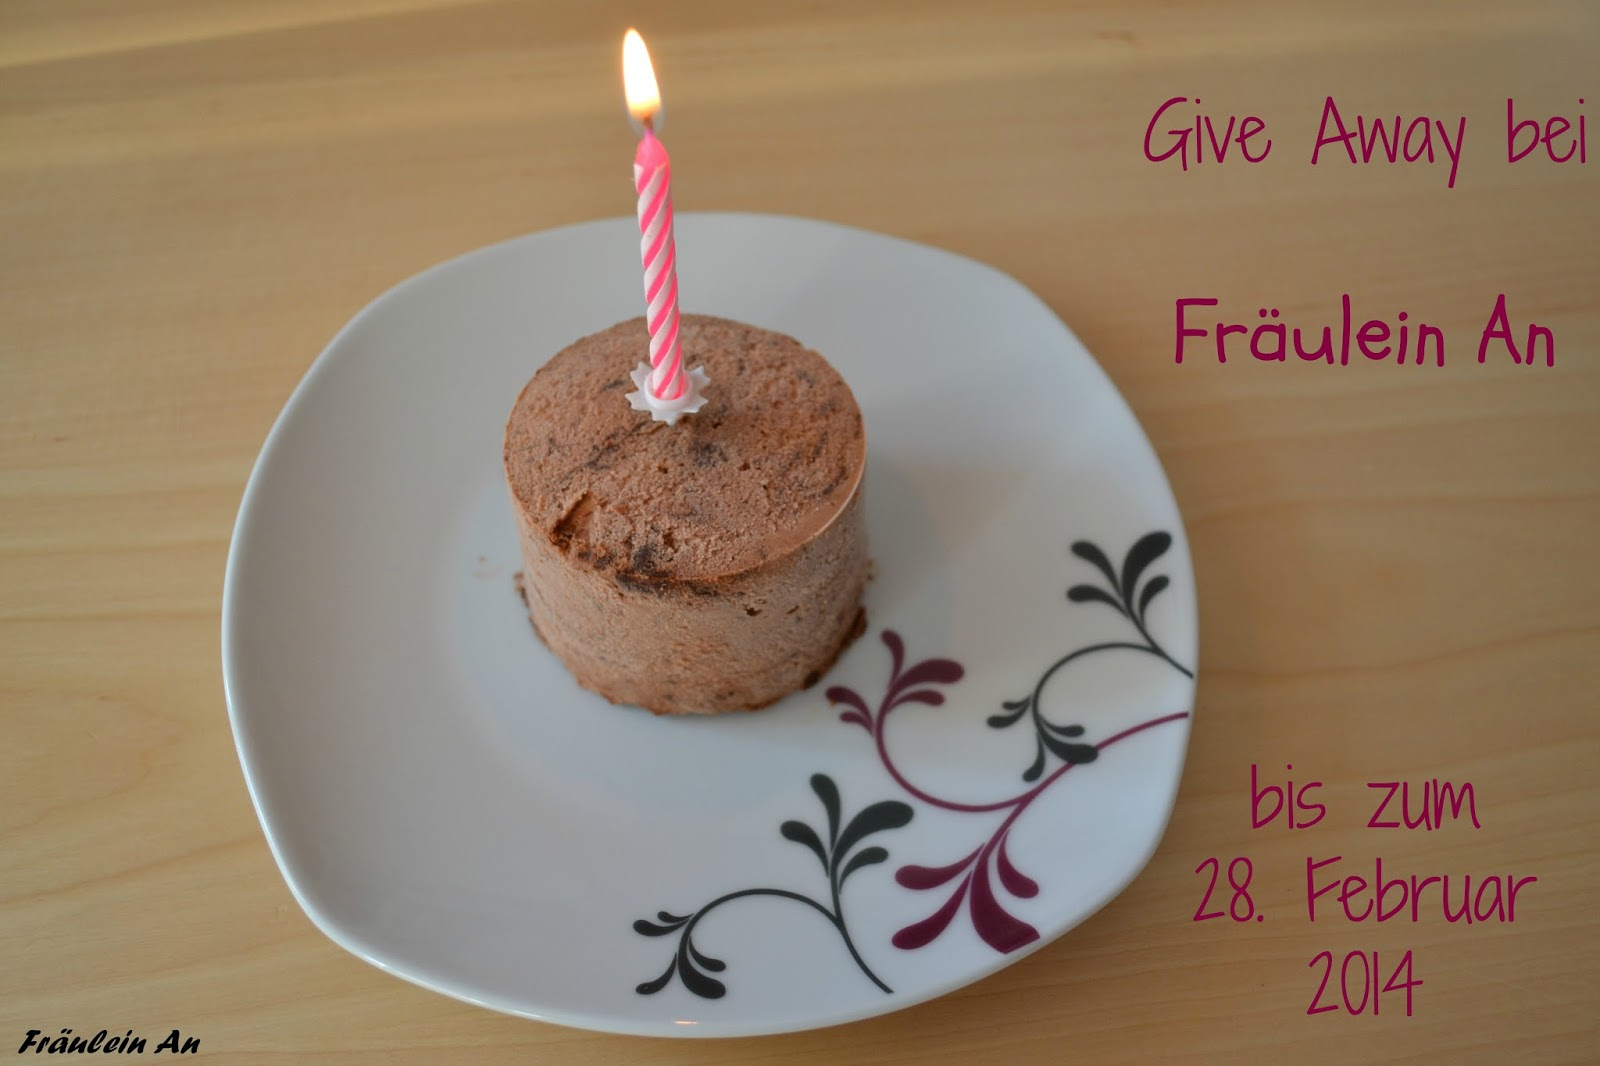 http://fraeuleinan.blogspot.de/2014/01/happy-birthday-fraulein-an.html